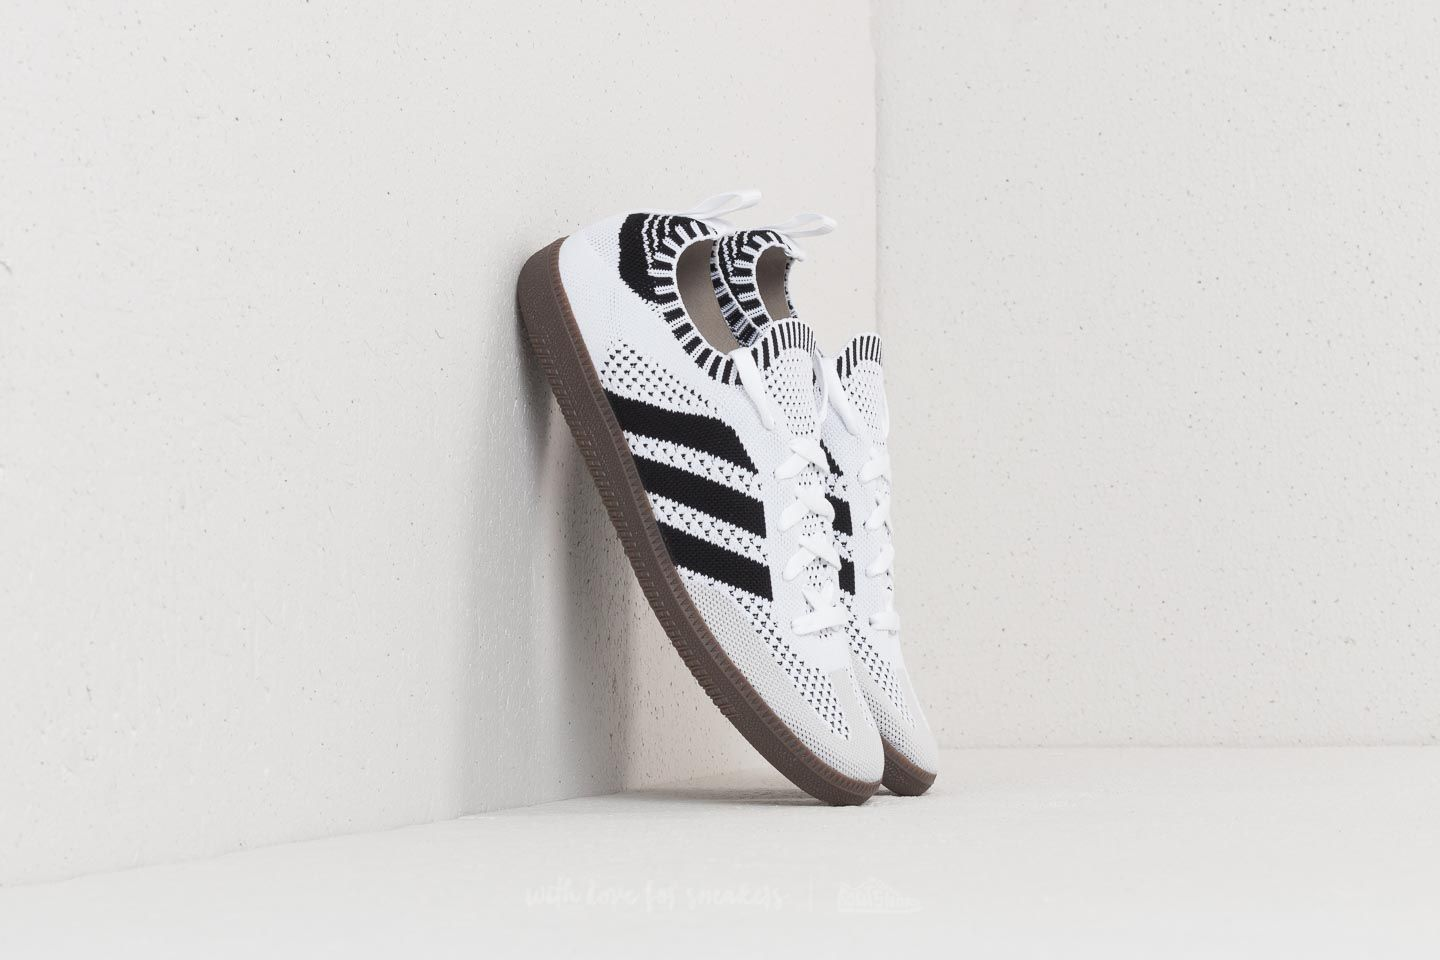 ad67878559d7 adidas Samba Primeknit Sock Ftw White  Core Black  Blue Bird ...